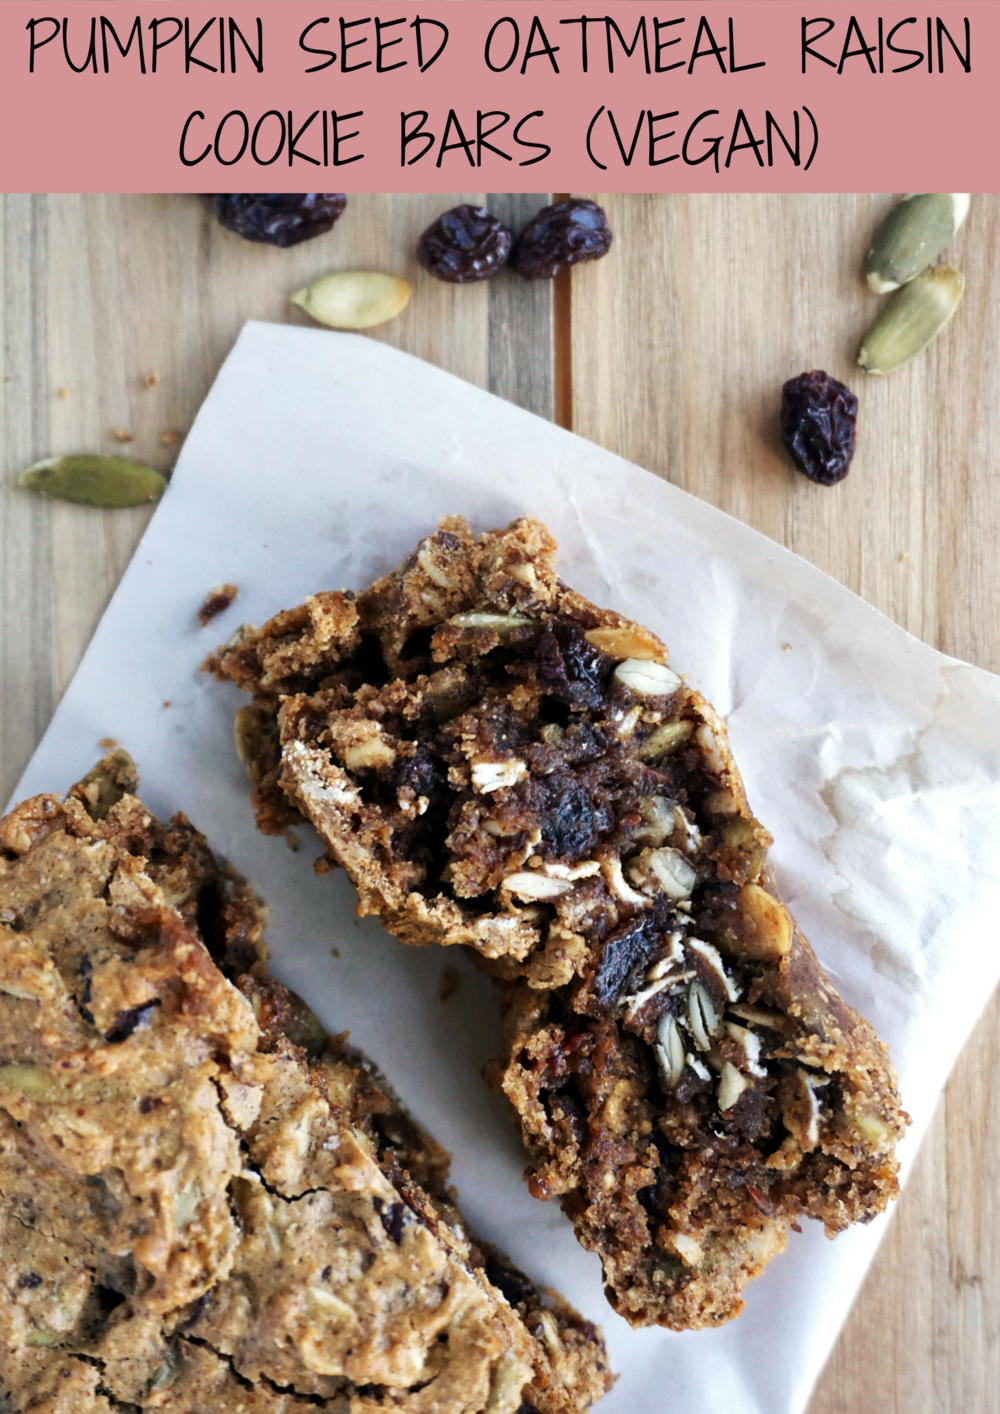 Pumpkin Seed Oatmeal Raisin Cookie Bars (Vegan)